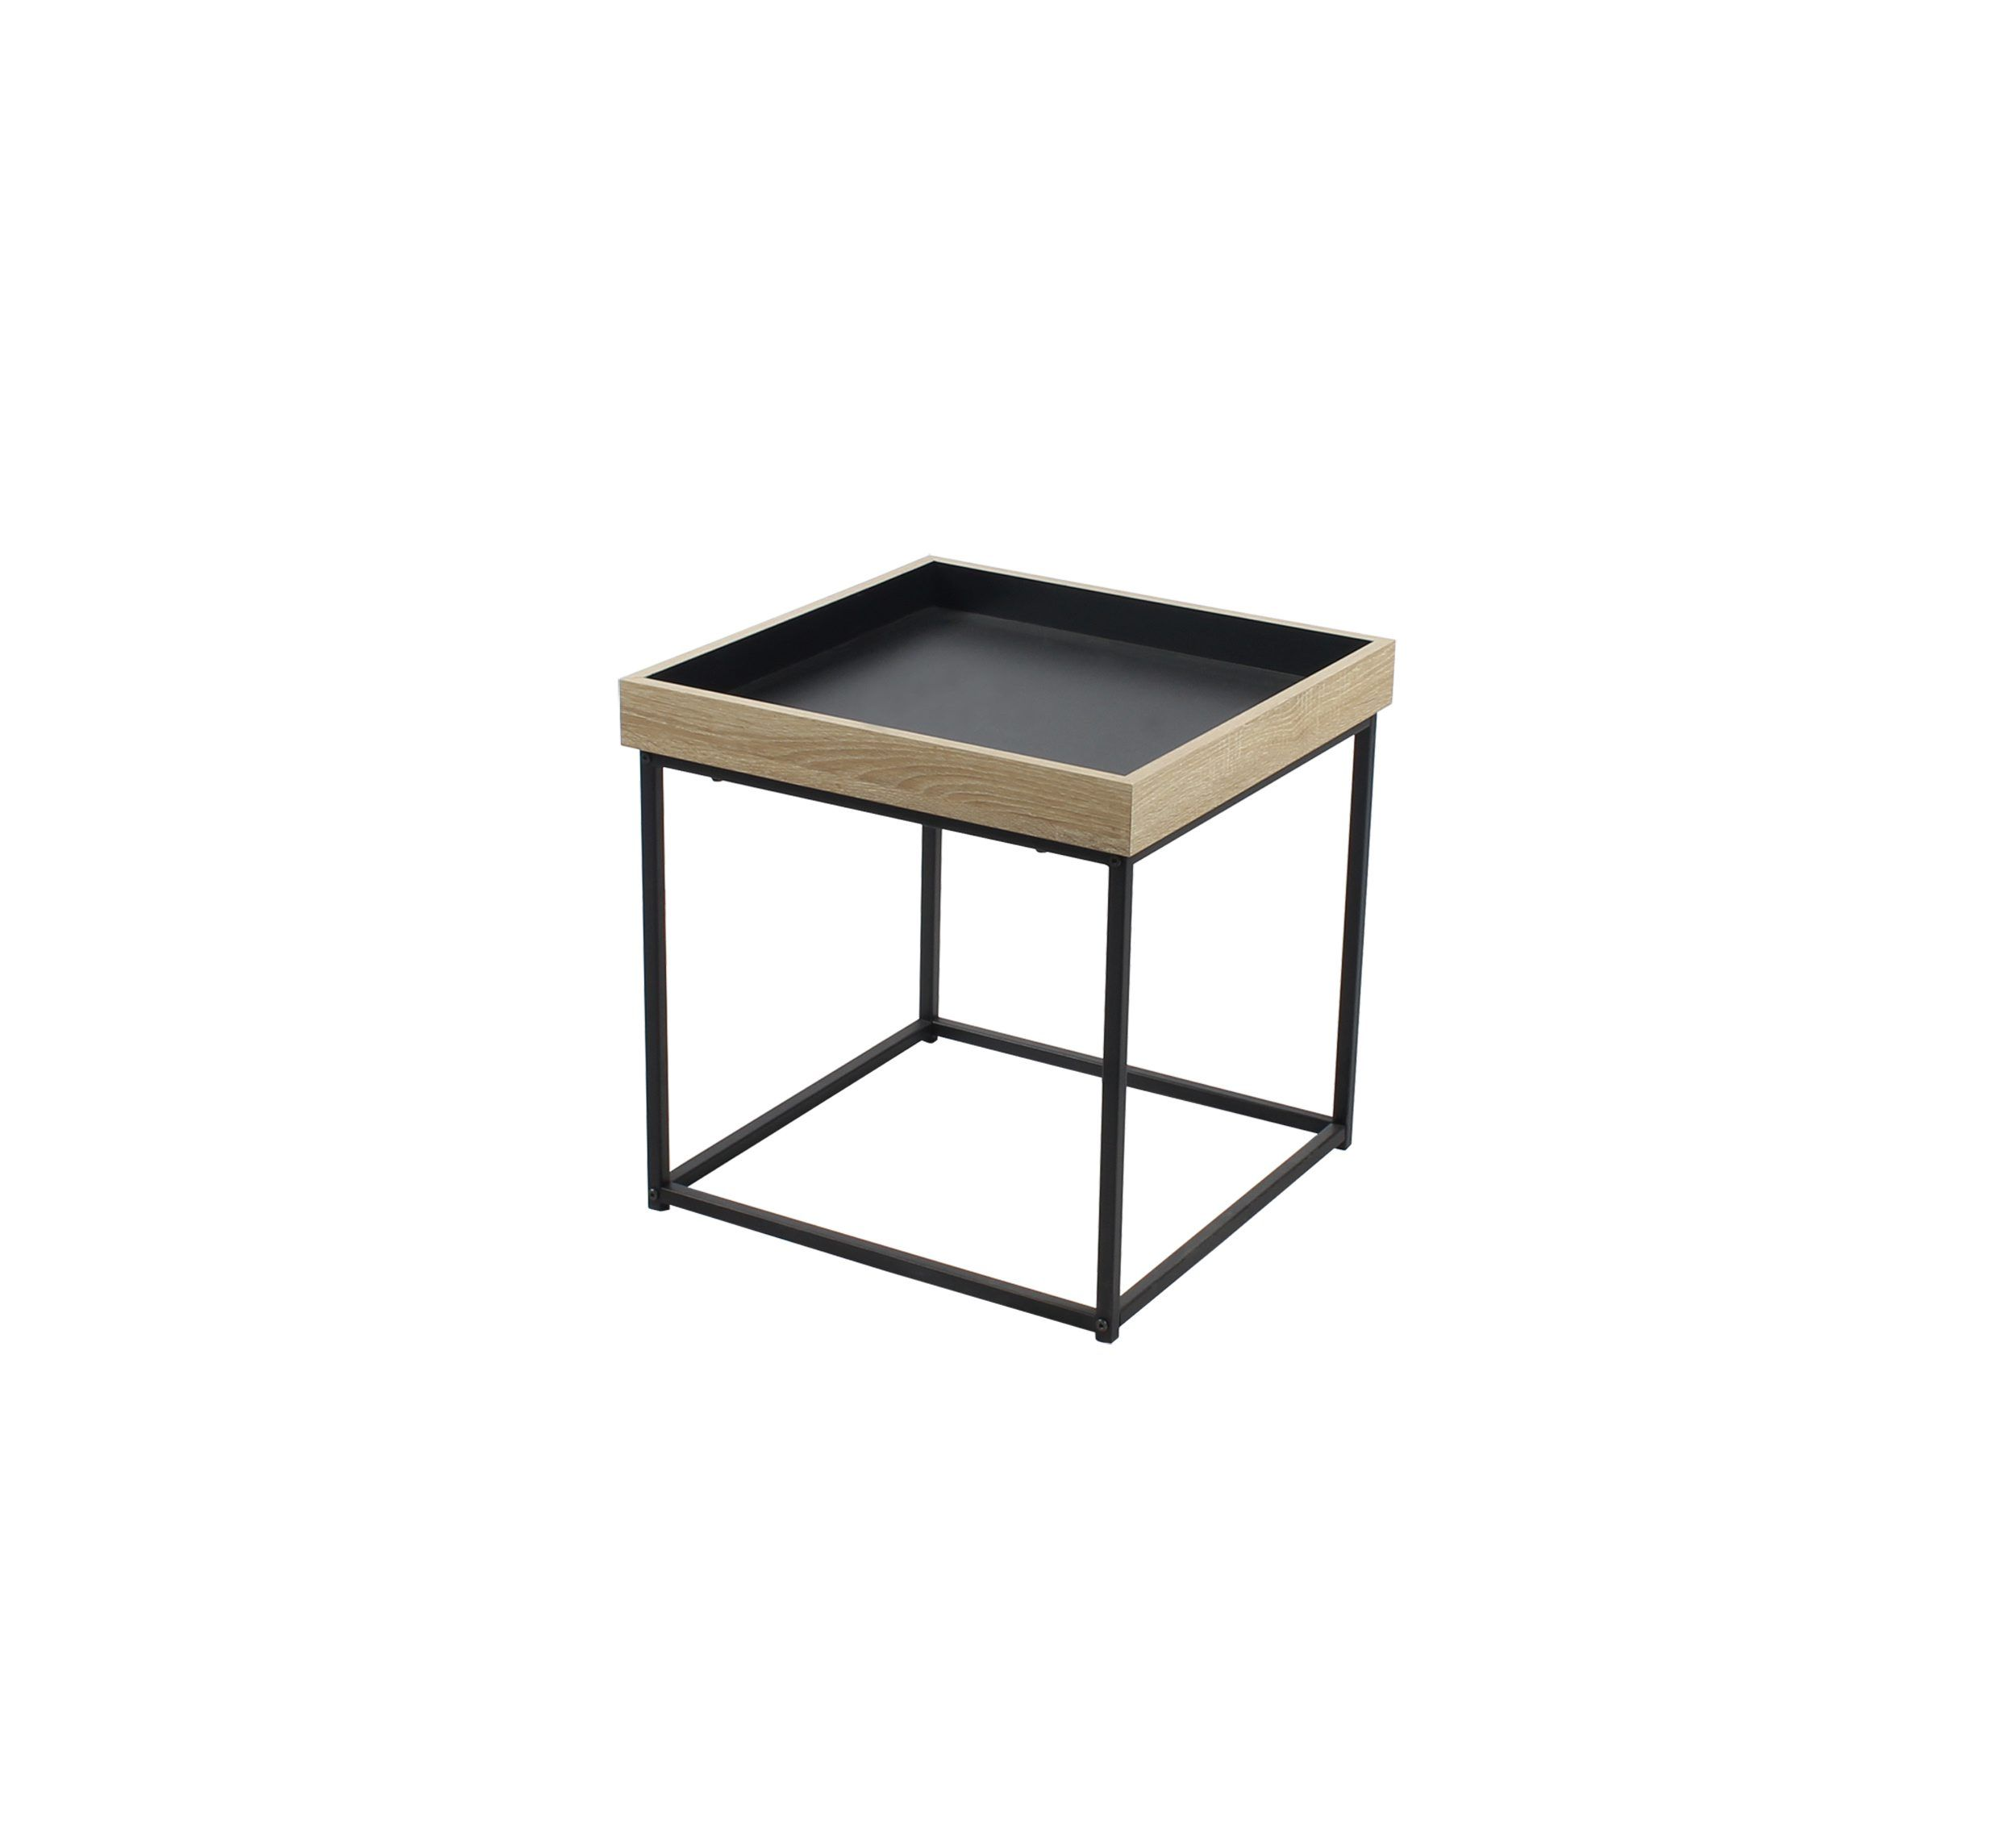 Table Basse Carree Ania Industrielle Chene Noir Meuble Canape